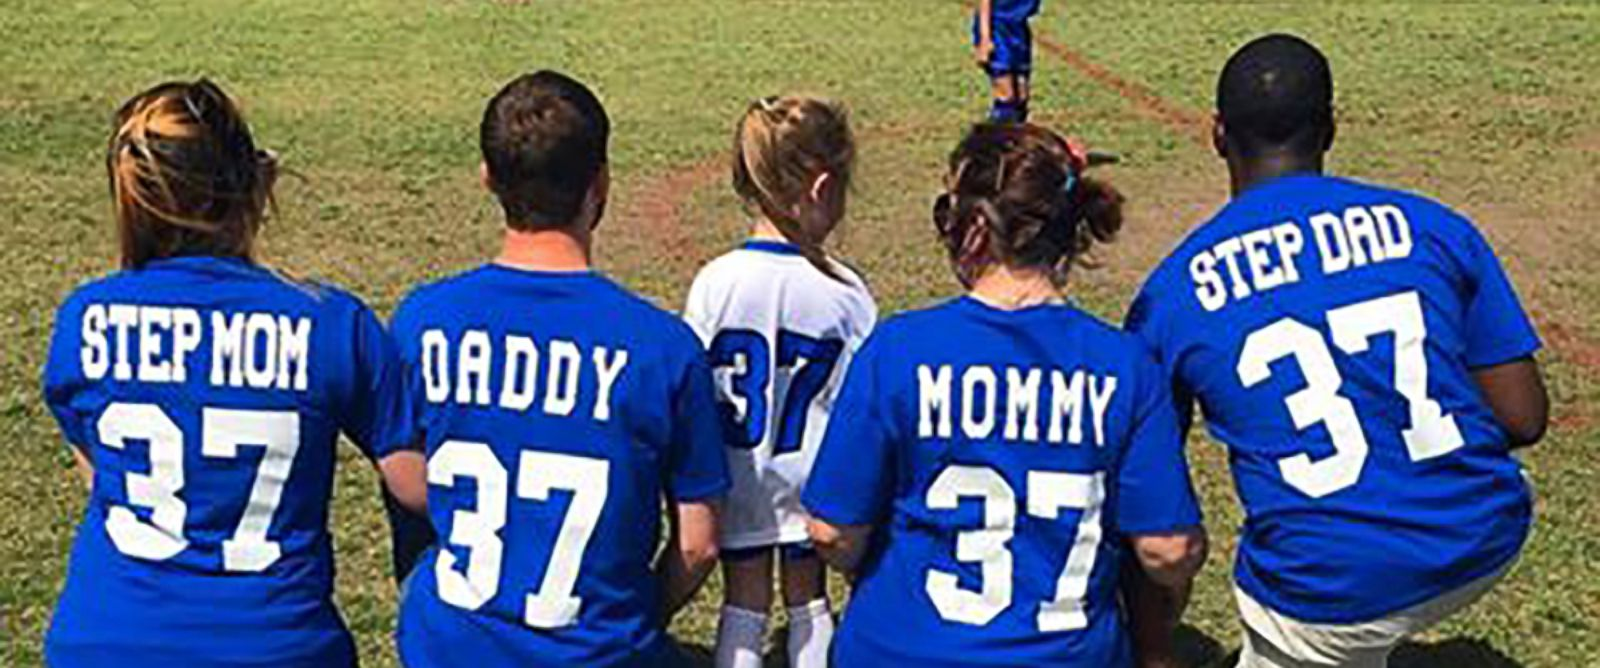 PHOTO: The parents and stepparents of Maelyn Player, 4, pose with Maelyn at her soccer game in custom-made jerseys.